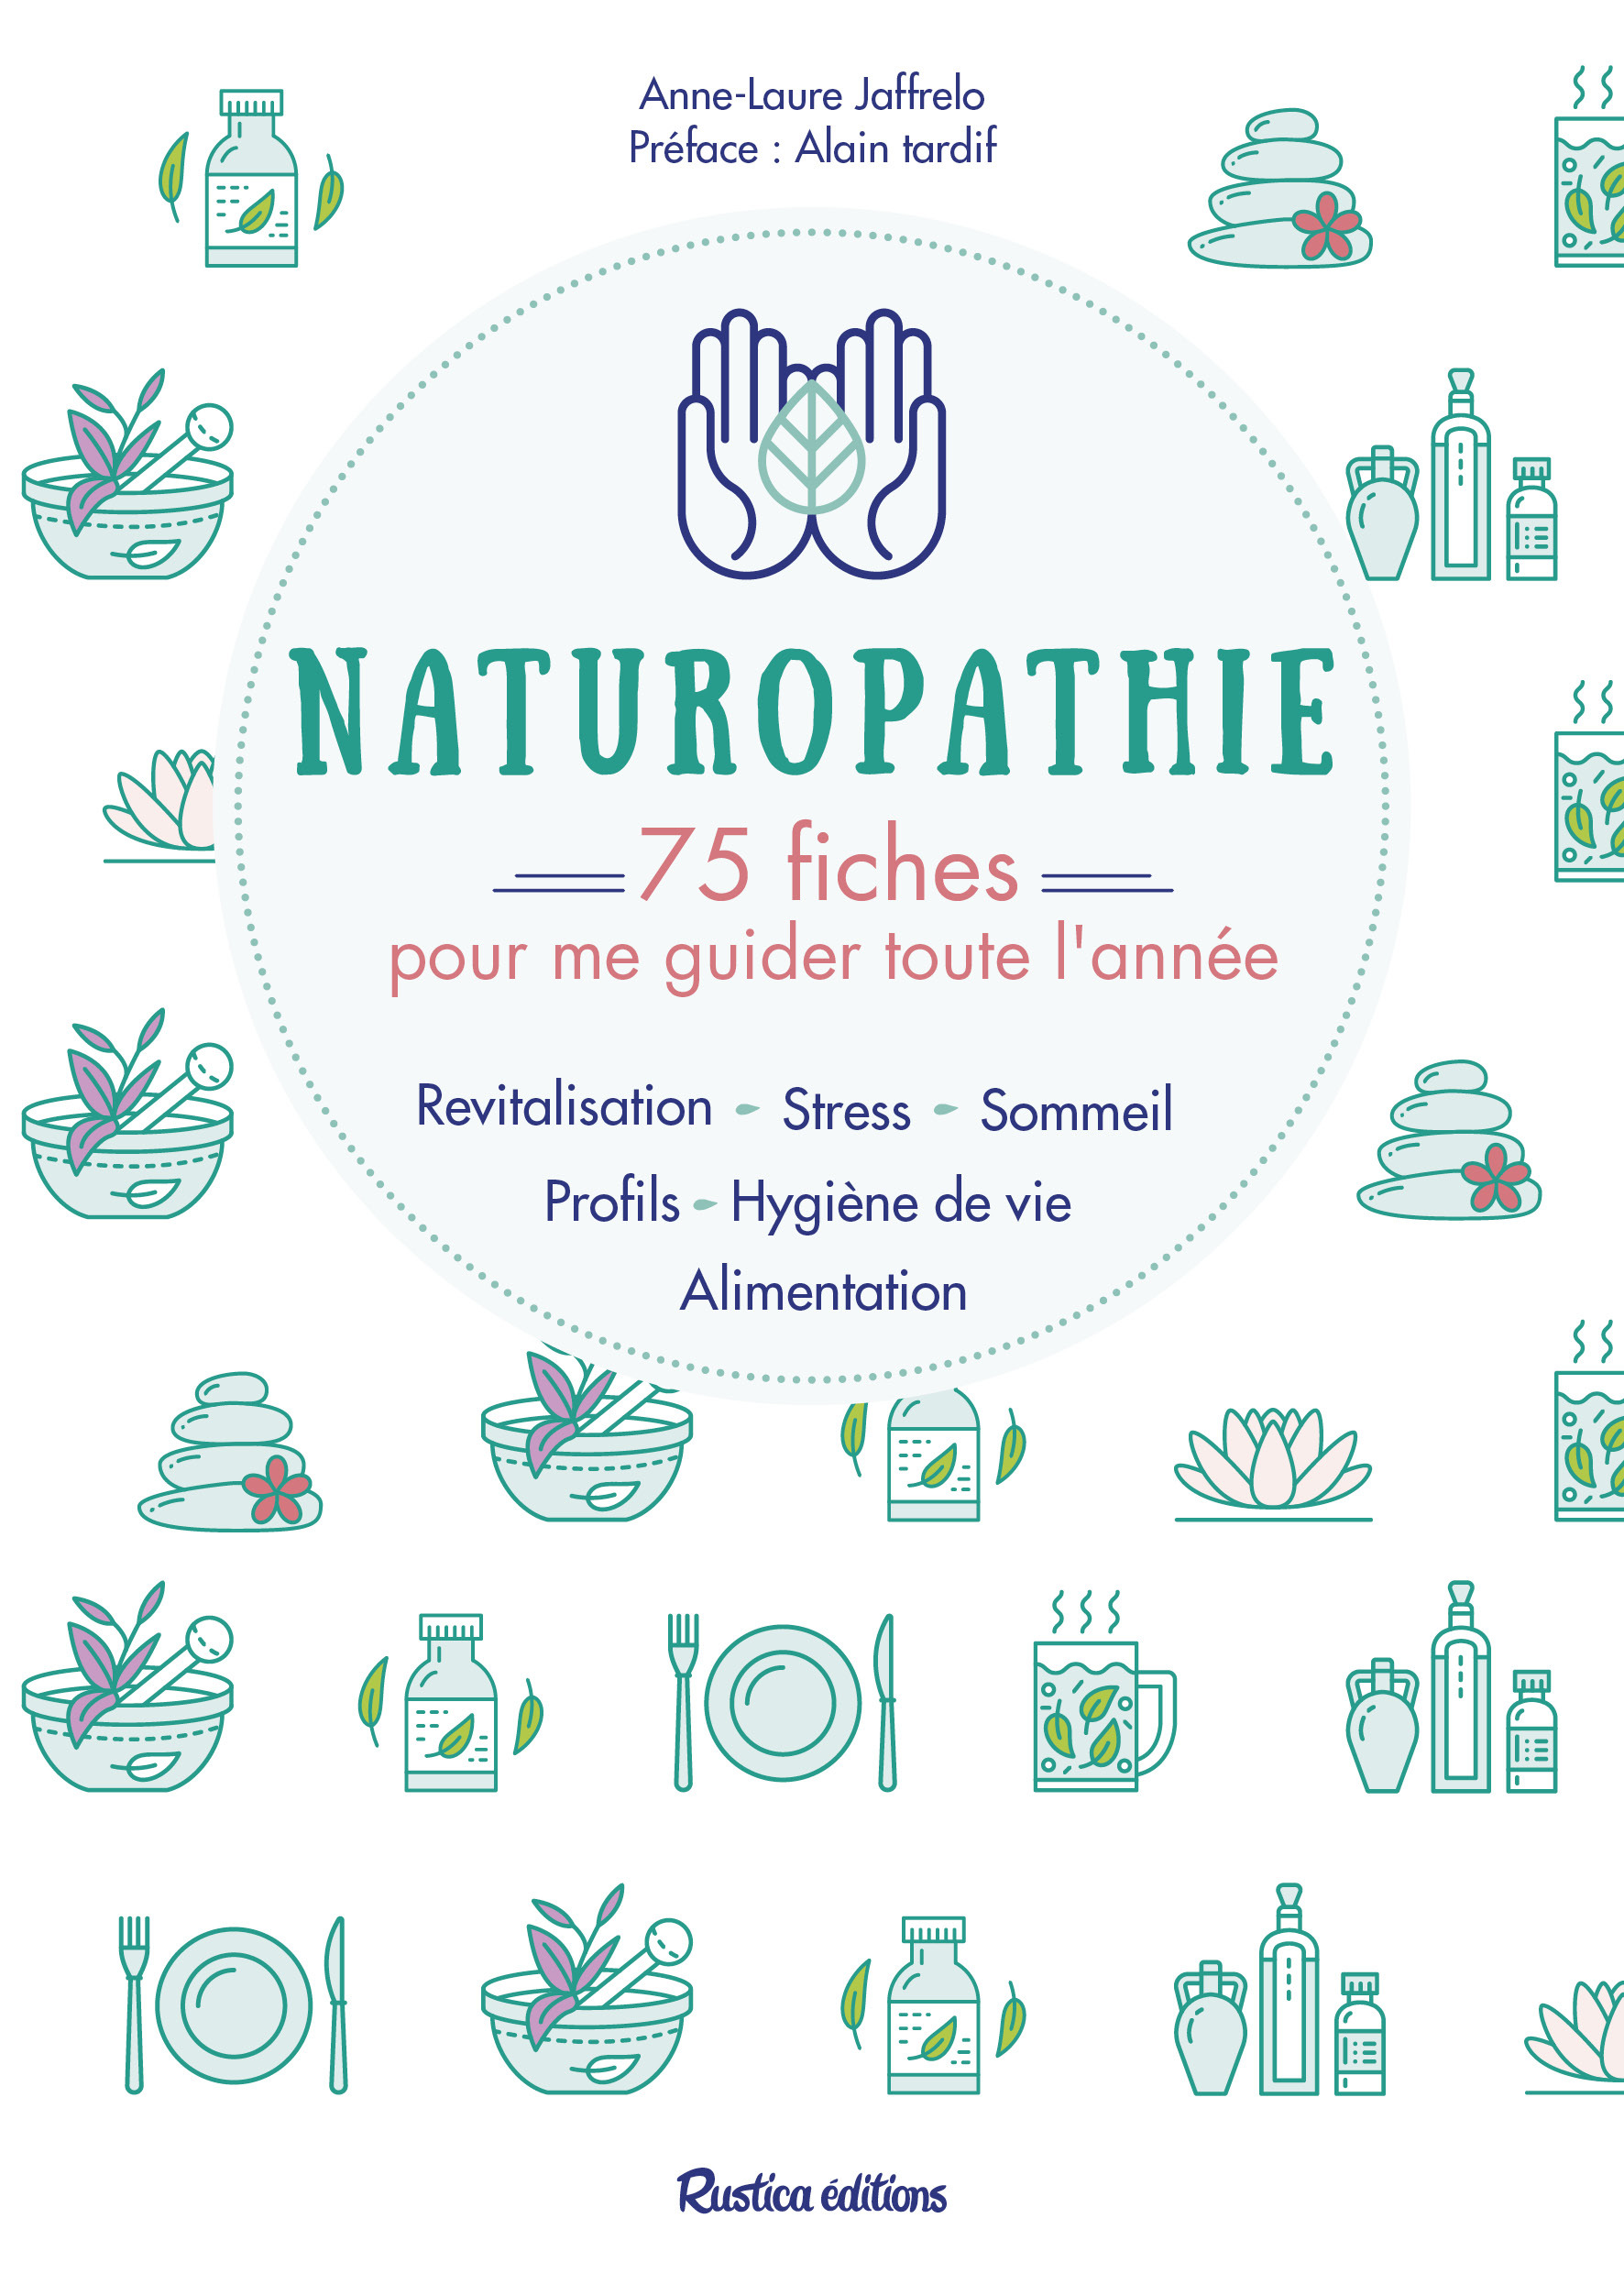 NATUROPATHIE : 70 FICHES POUR ME GUIDER TOUTE L'ANNEE !